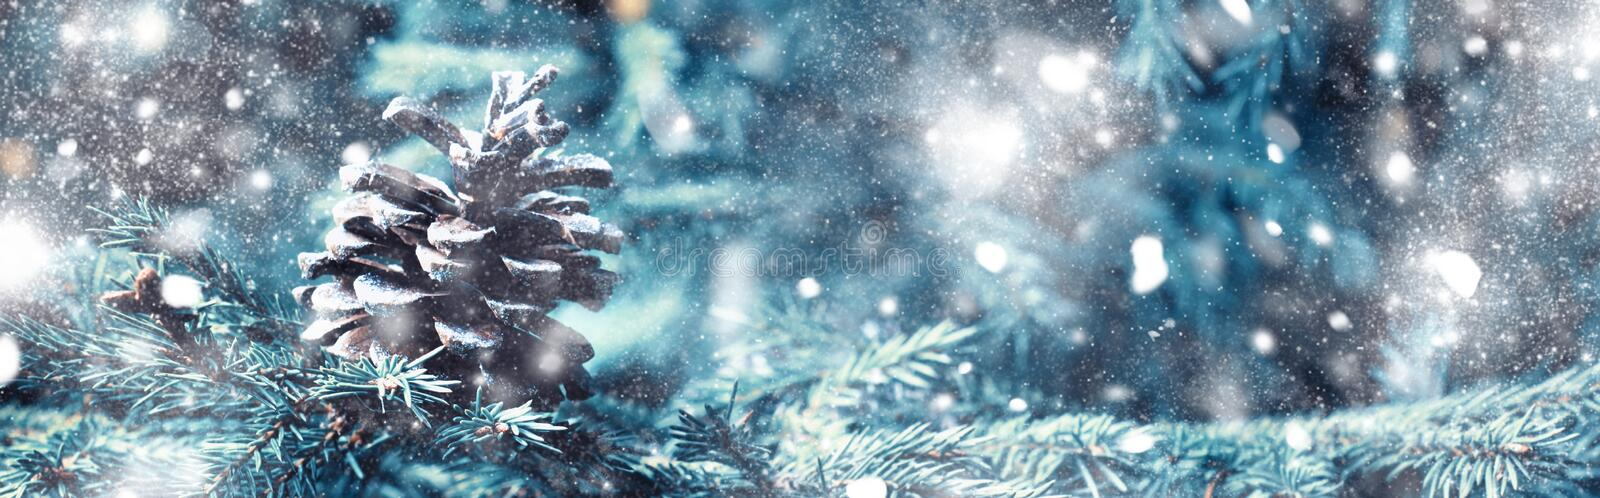 Christmas or New Year background with a festive fir tree and pin royalty free stock photography